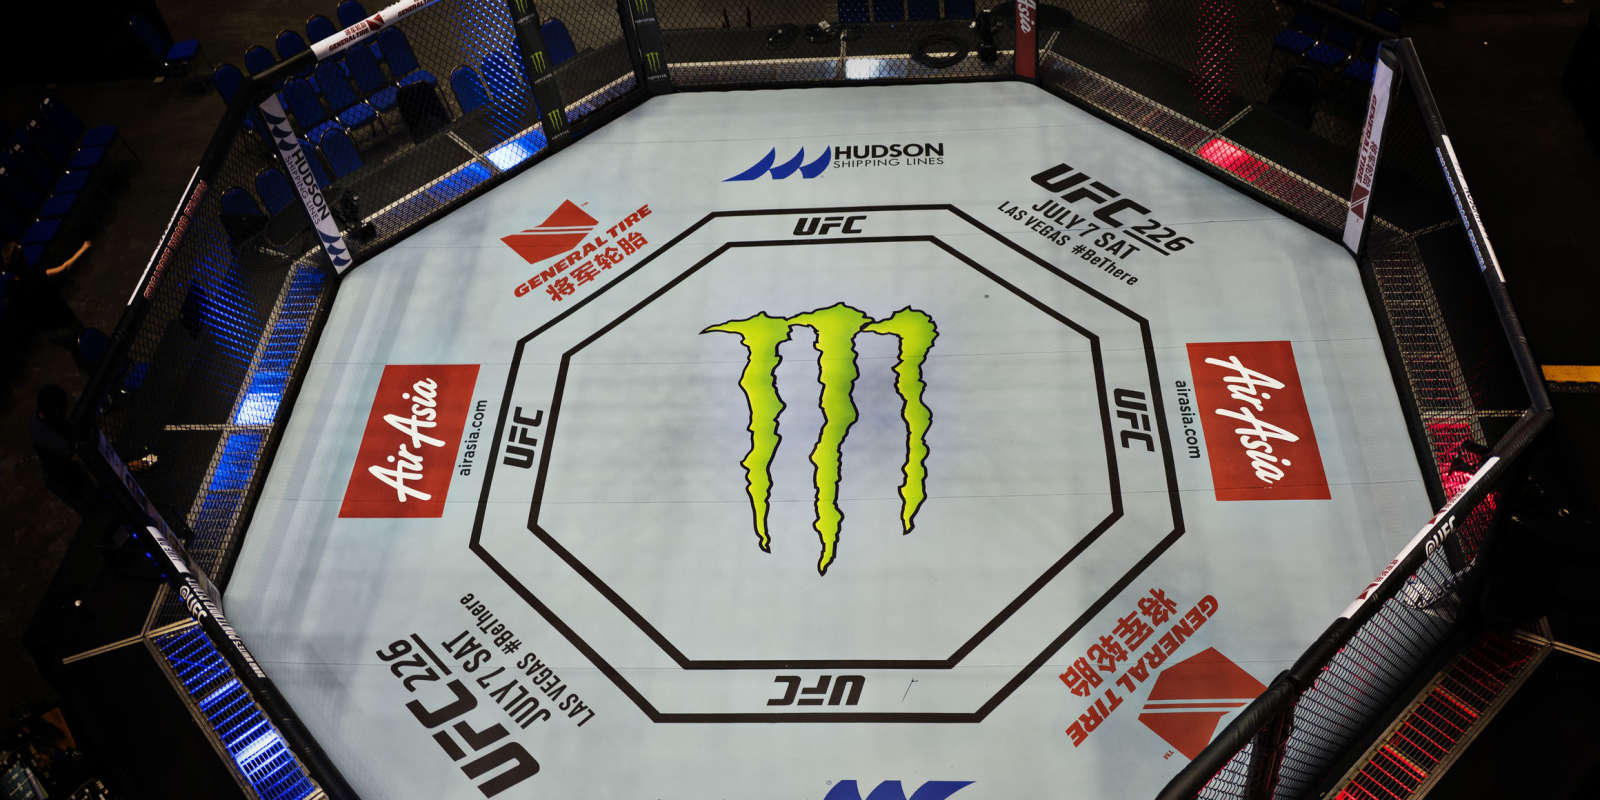 Image of the Octagon from the UFC Singapore match